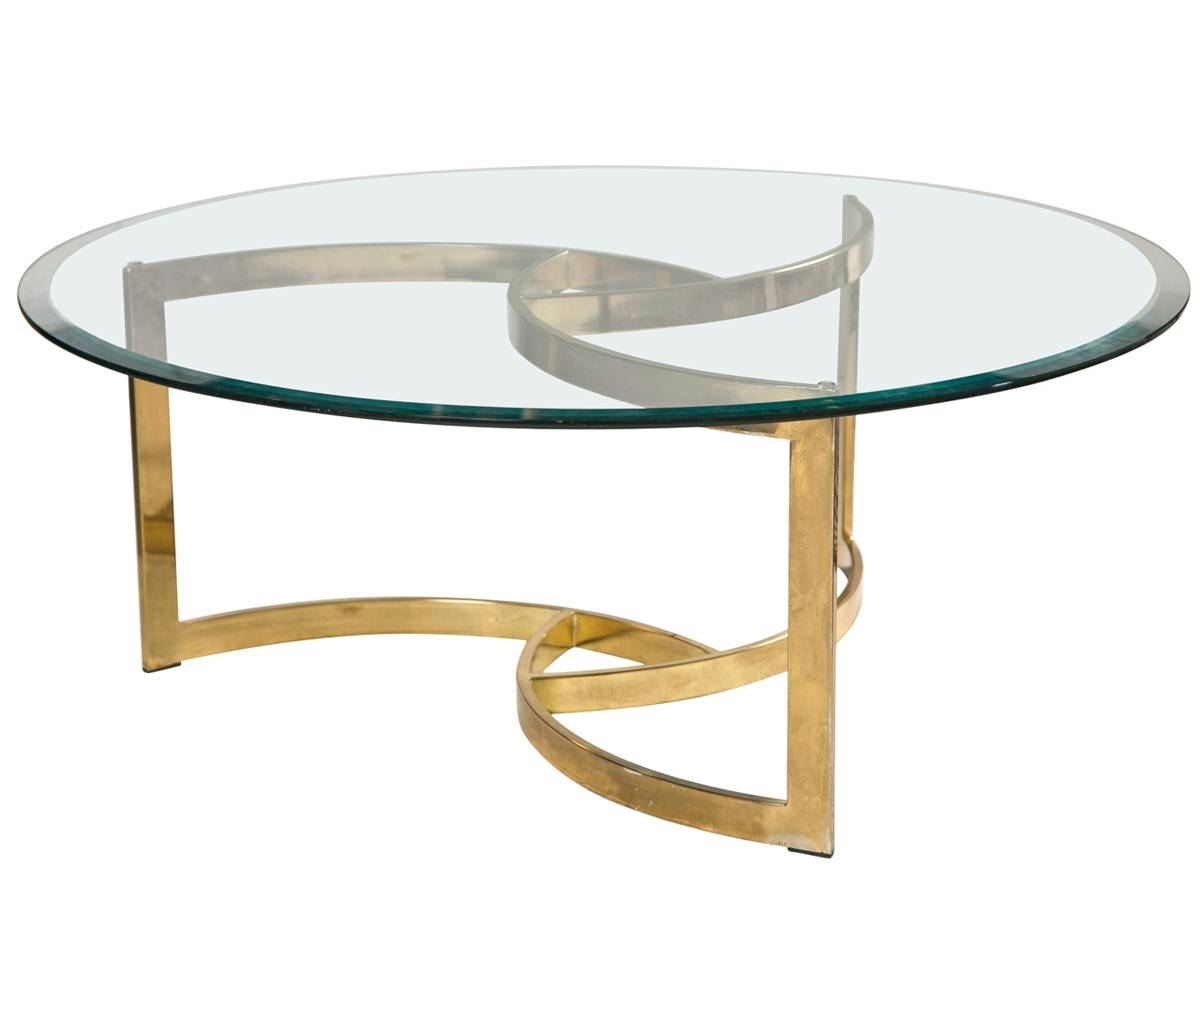 Antique Brass And Glass Coffee Table inside Antique Glass Coffee Tables (Image 3 of 30)